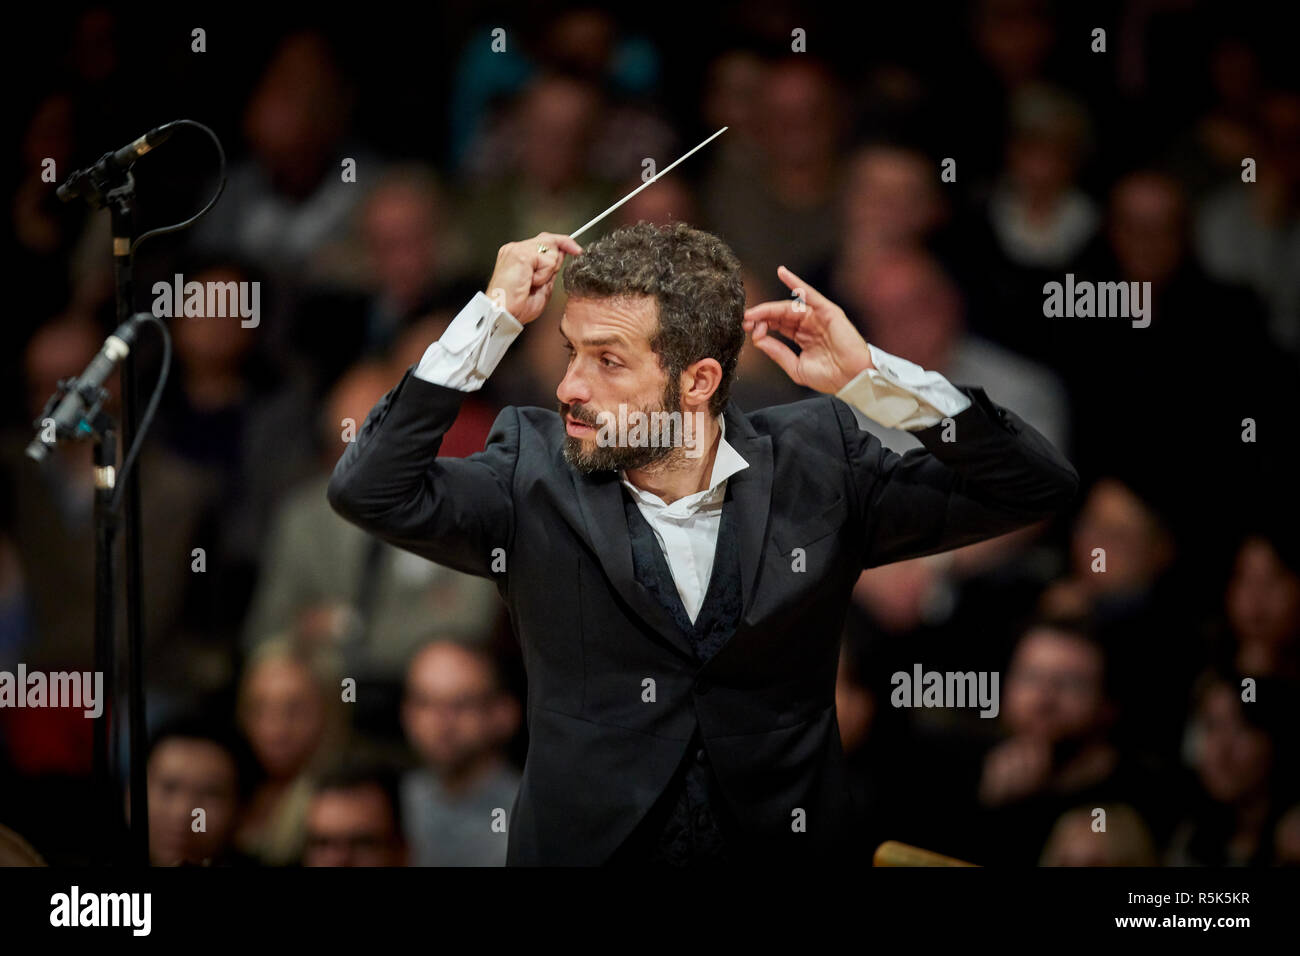 Israeli conductor Omer Meir Wellber becomes chief conductor of the BBC Philharmonic Orchestra, performing at  the Bridgewater Hall is Manchester - Stock Image